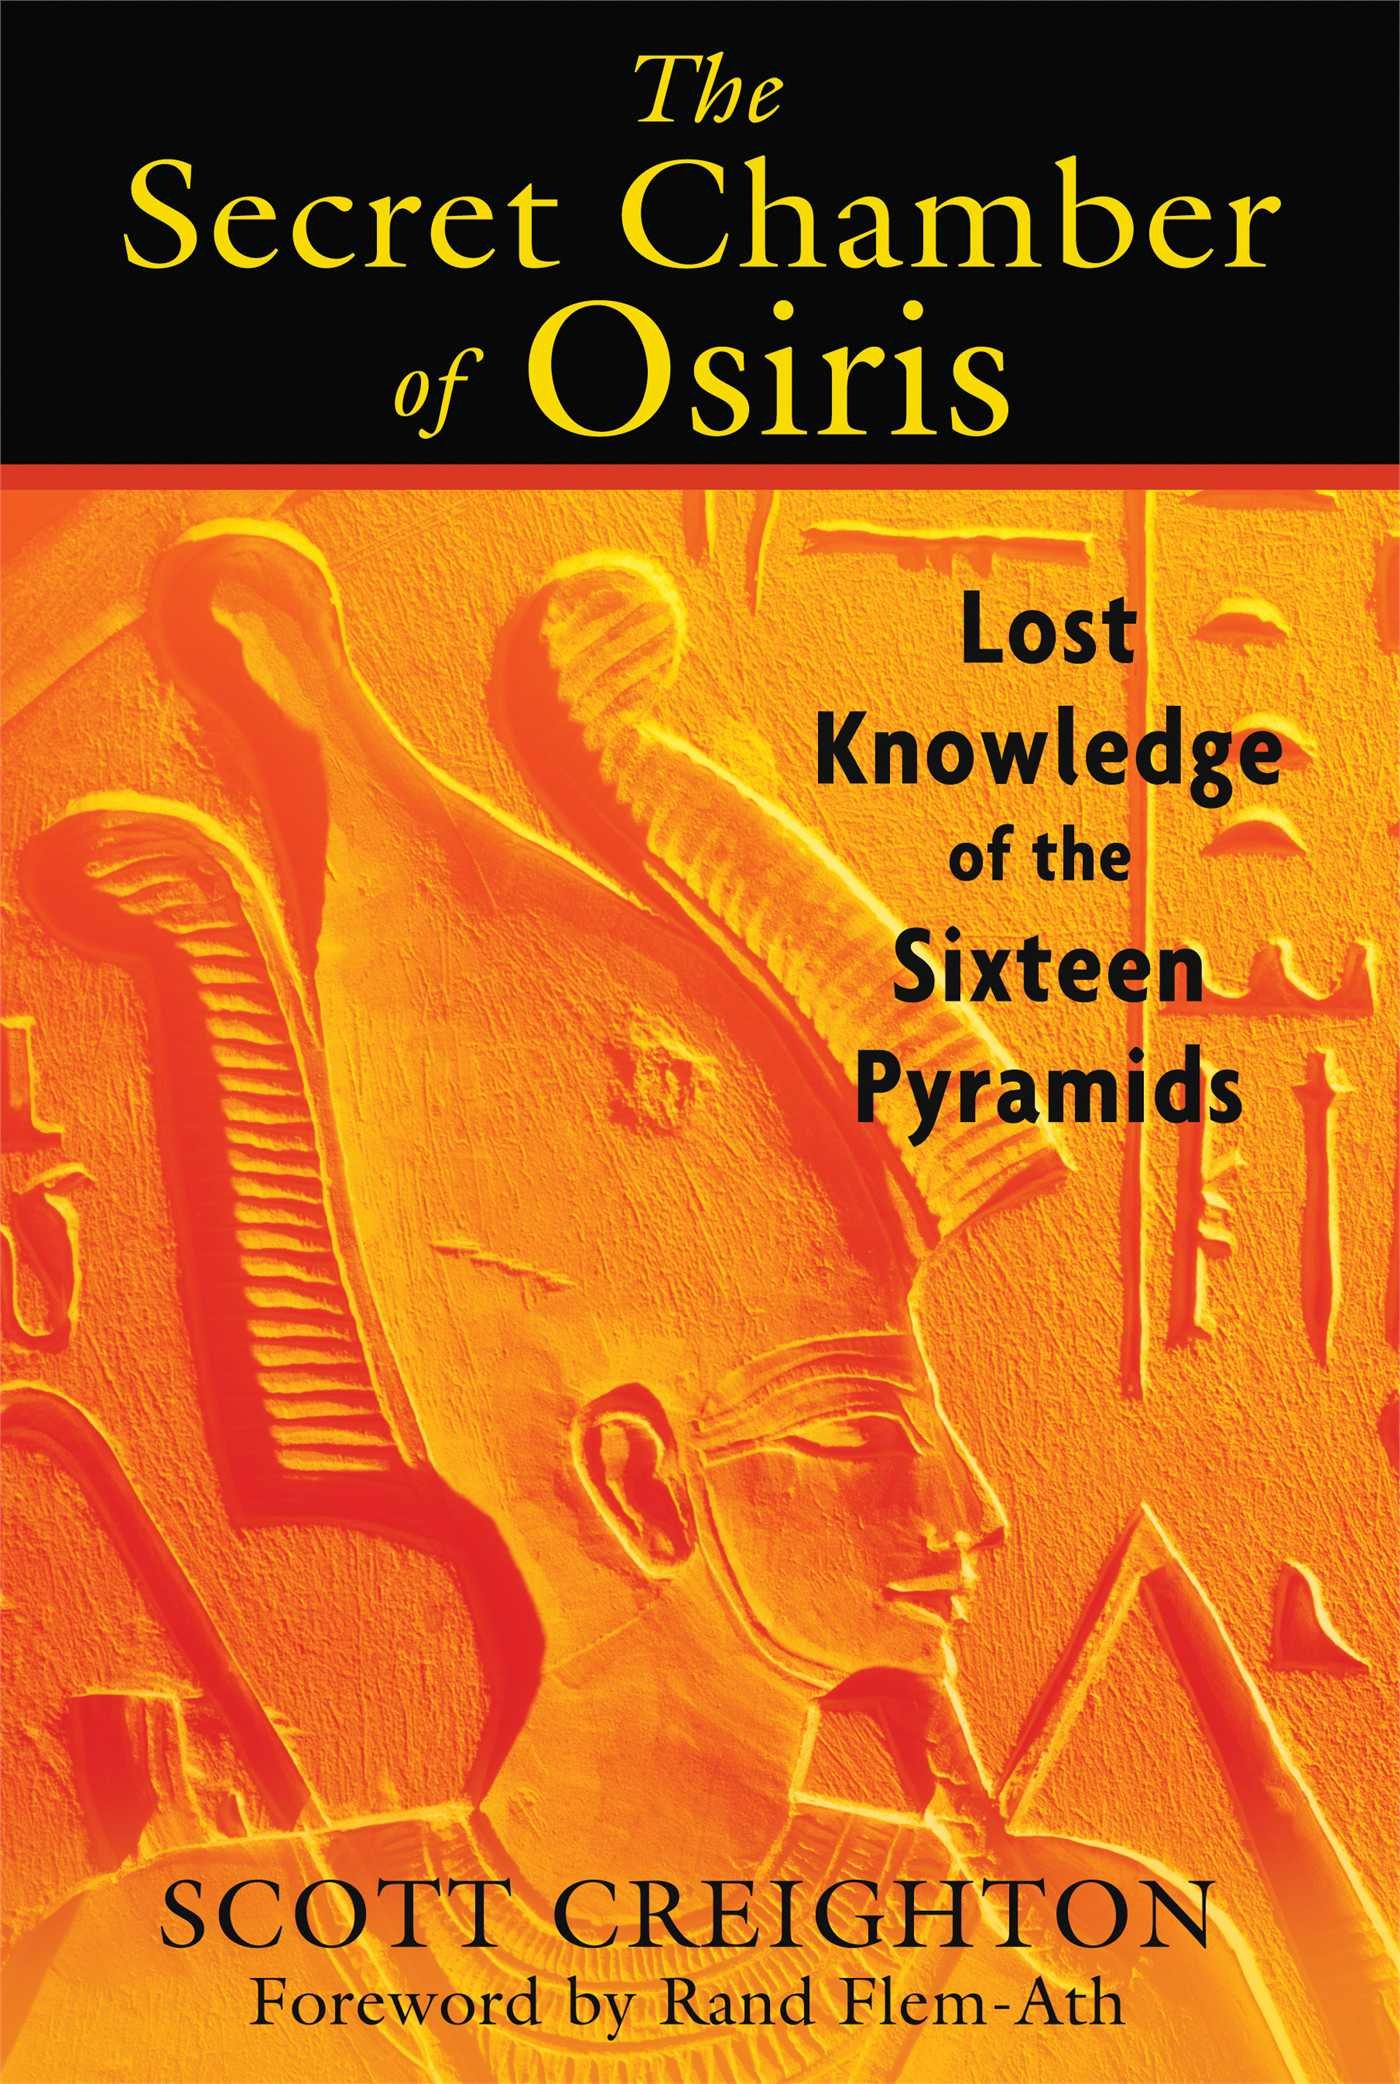 The Secret Chamber Of Osiris Lost Knowledge Of The Sixteen Pyramids